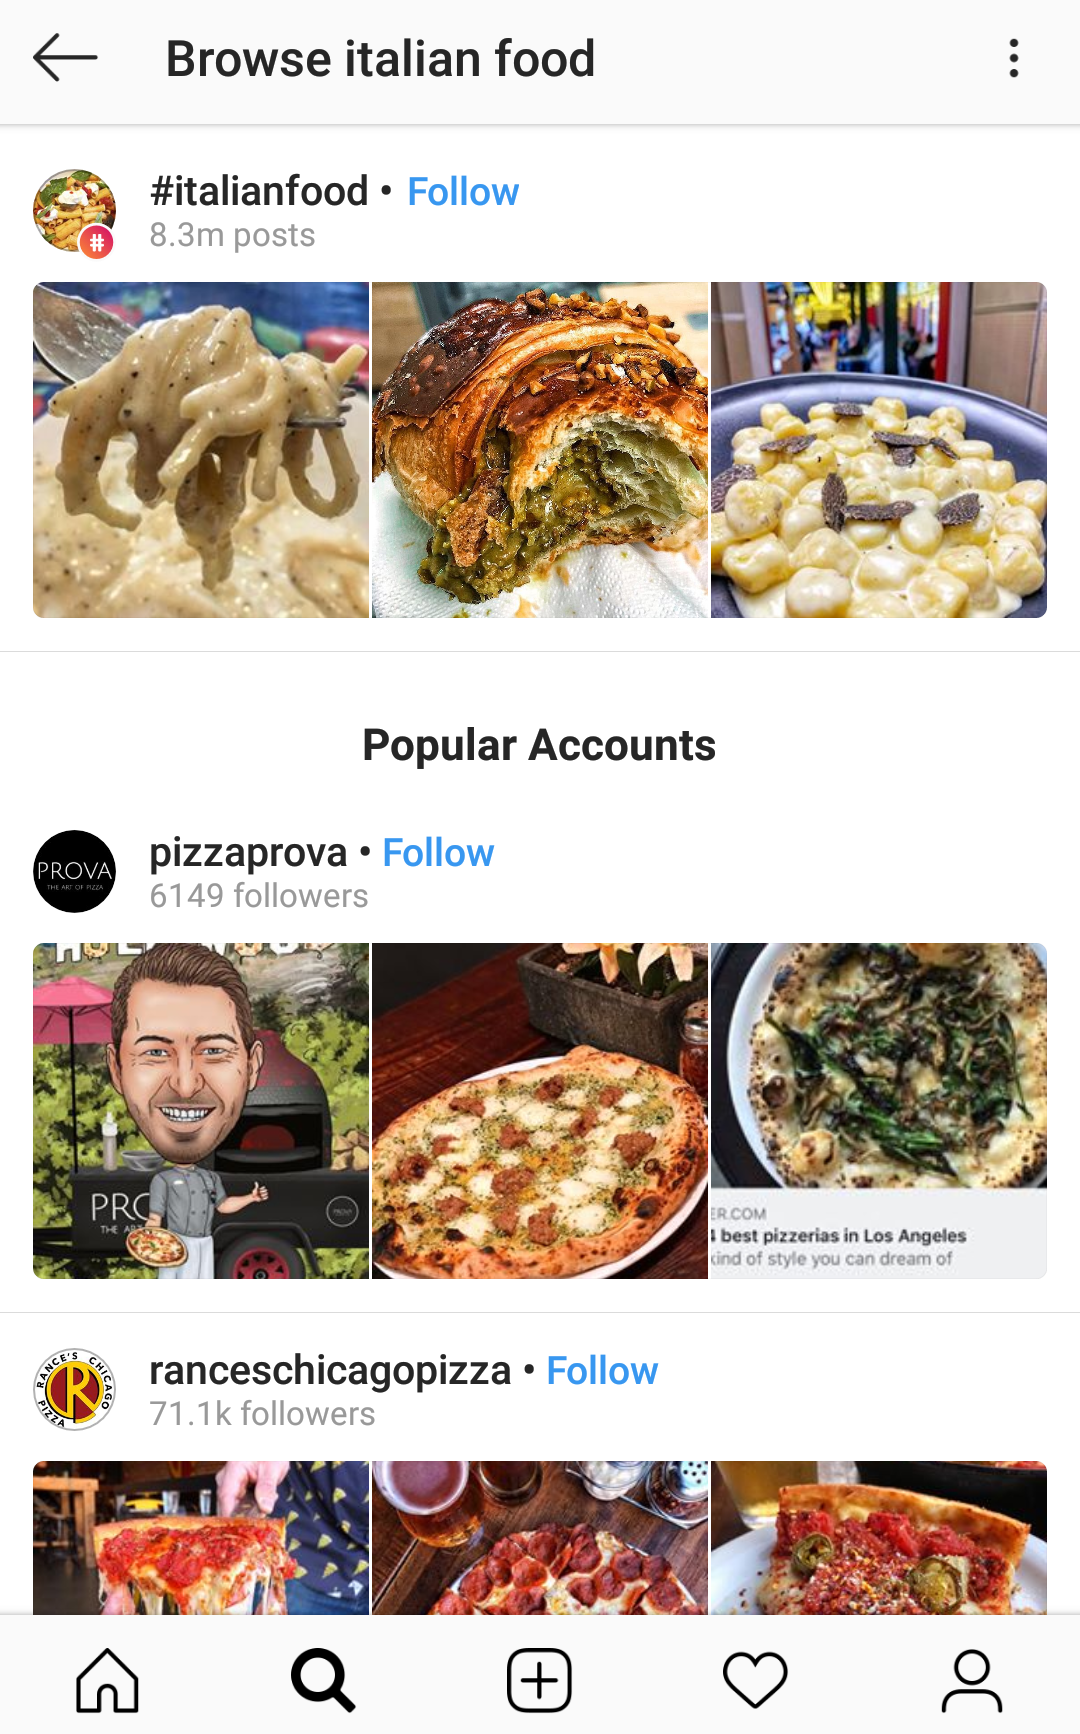 Instagram's native search is quite broad for Instagram listening